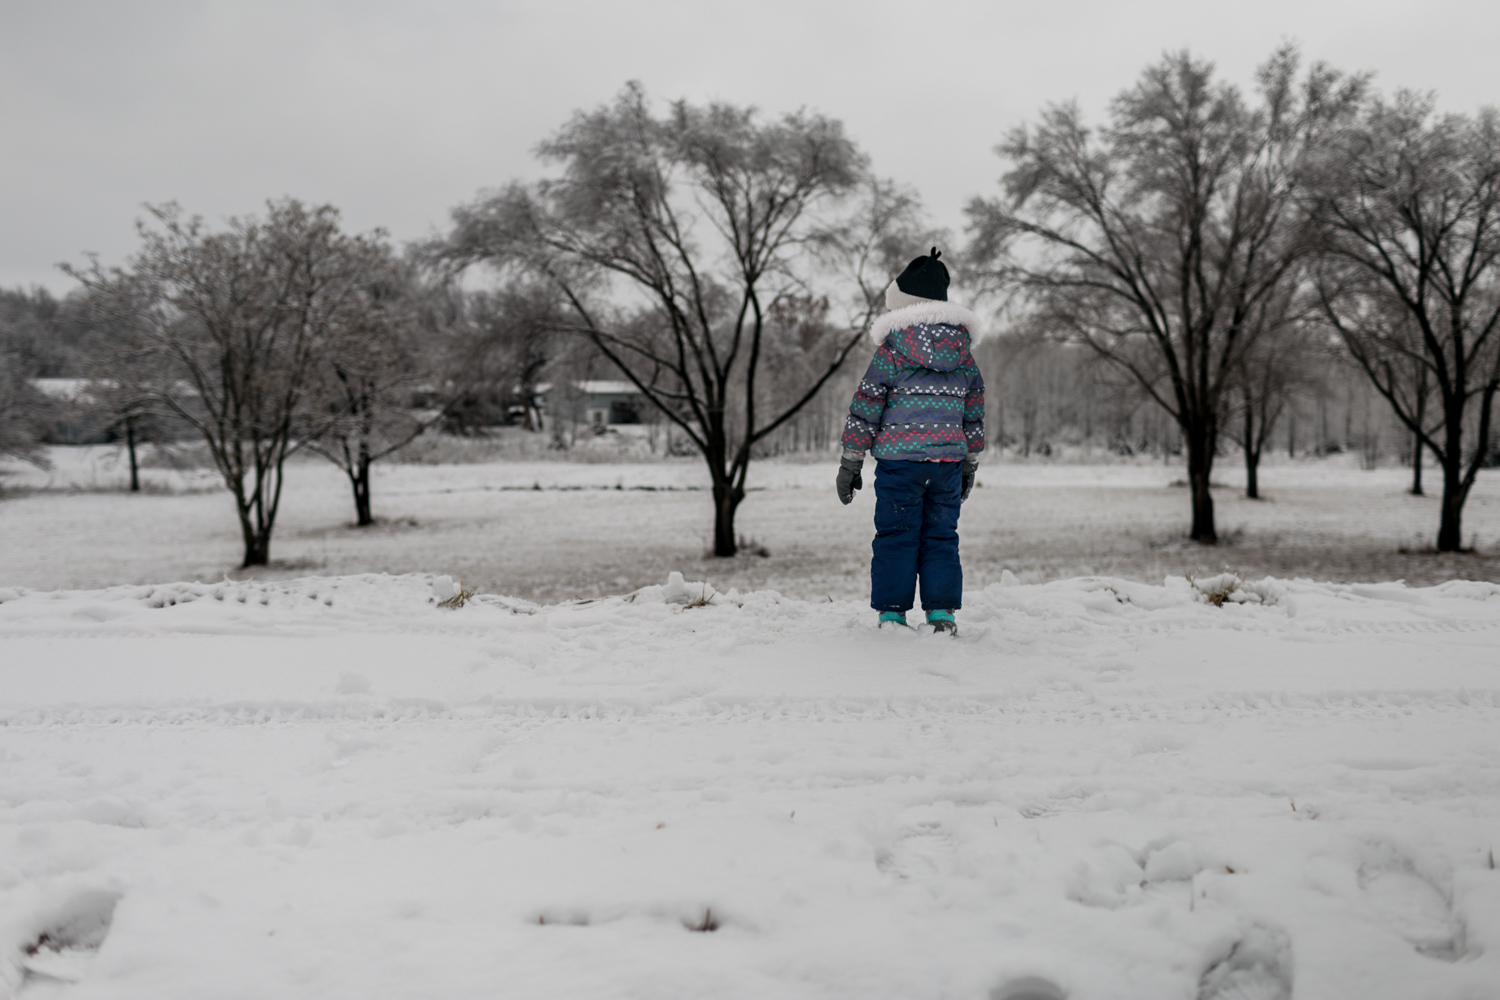 Playing in the snow. Captured by best Lifestyle Family Photographer, Renee McDaniel in Manhattan, Kansas.